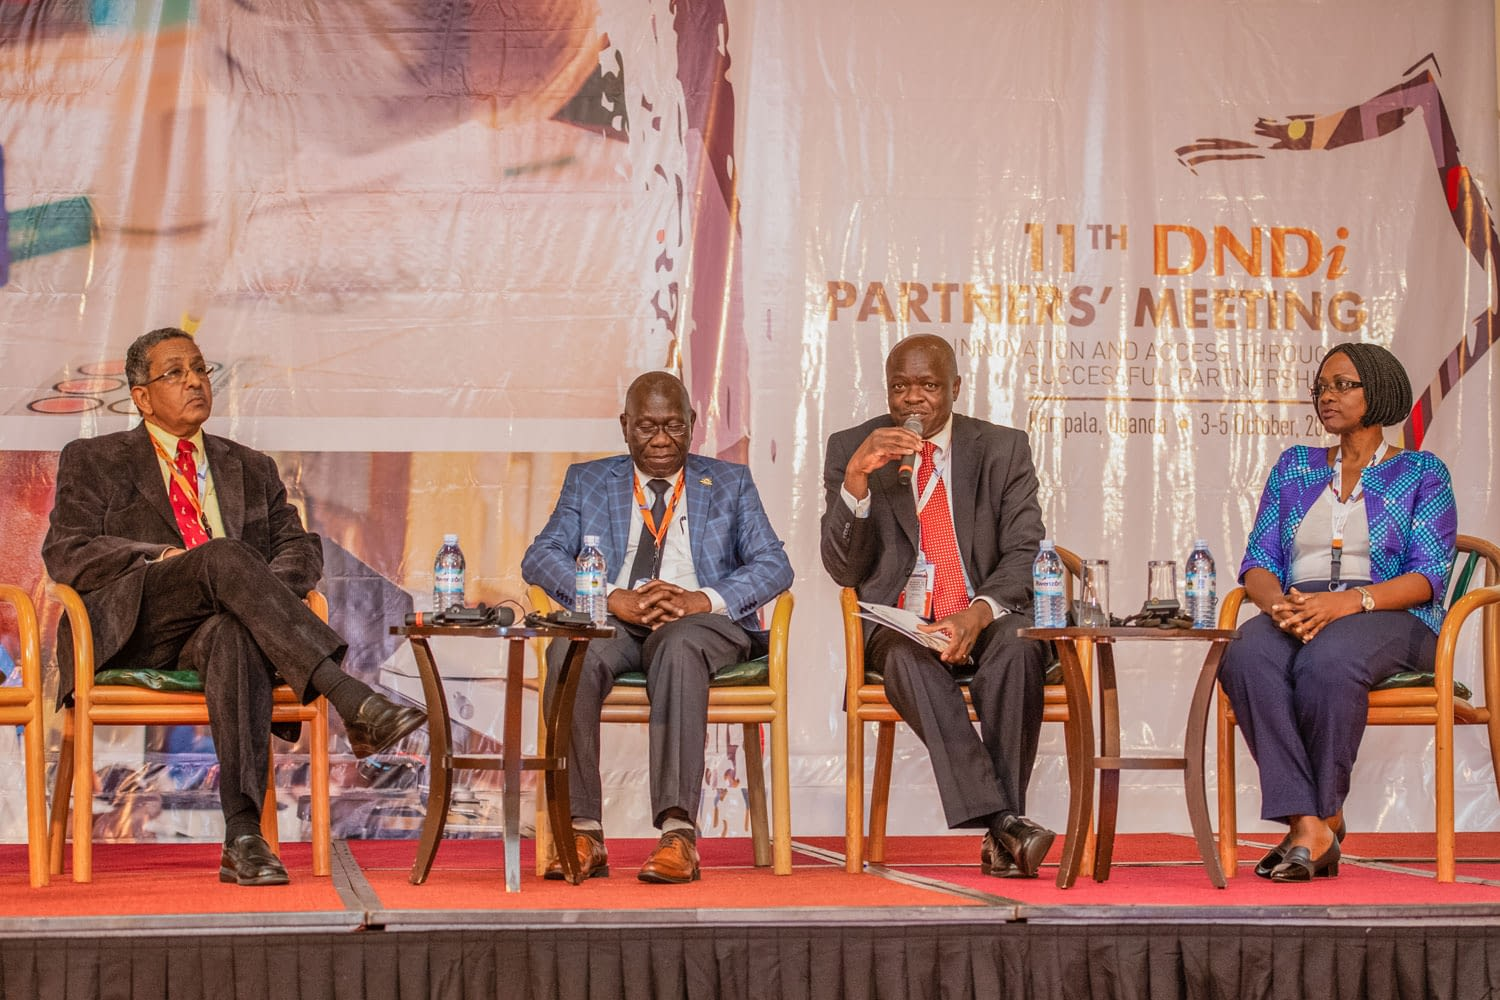 Dr Bernhards Ogutu, holding the microphone, moderates a session on enhancing medical research capacities in Eastern Africa. He is joined by Dr Juliet Mwanga of Epicenter Uganda (on the right), Prof. Celestino Obua of Mbarara University Uganda, and Prof. Ahmed Fahal of MRC Sudan (on the left)